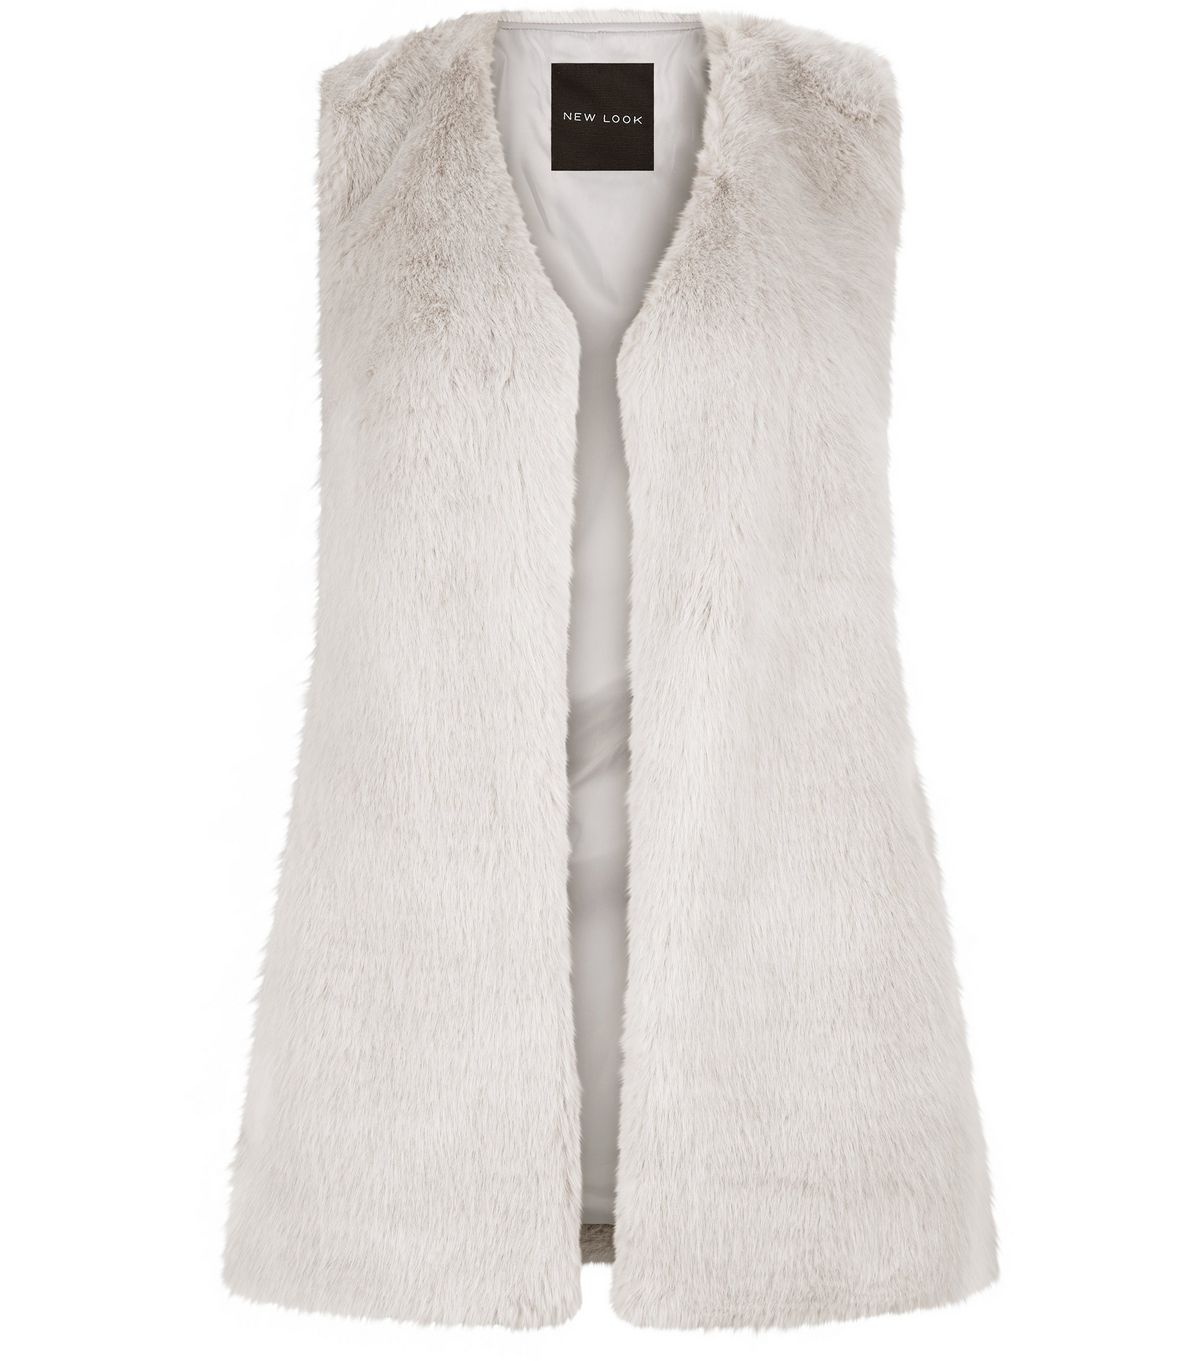 gilet, autumn fashion for under £35